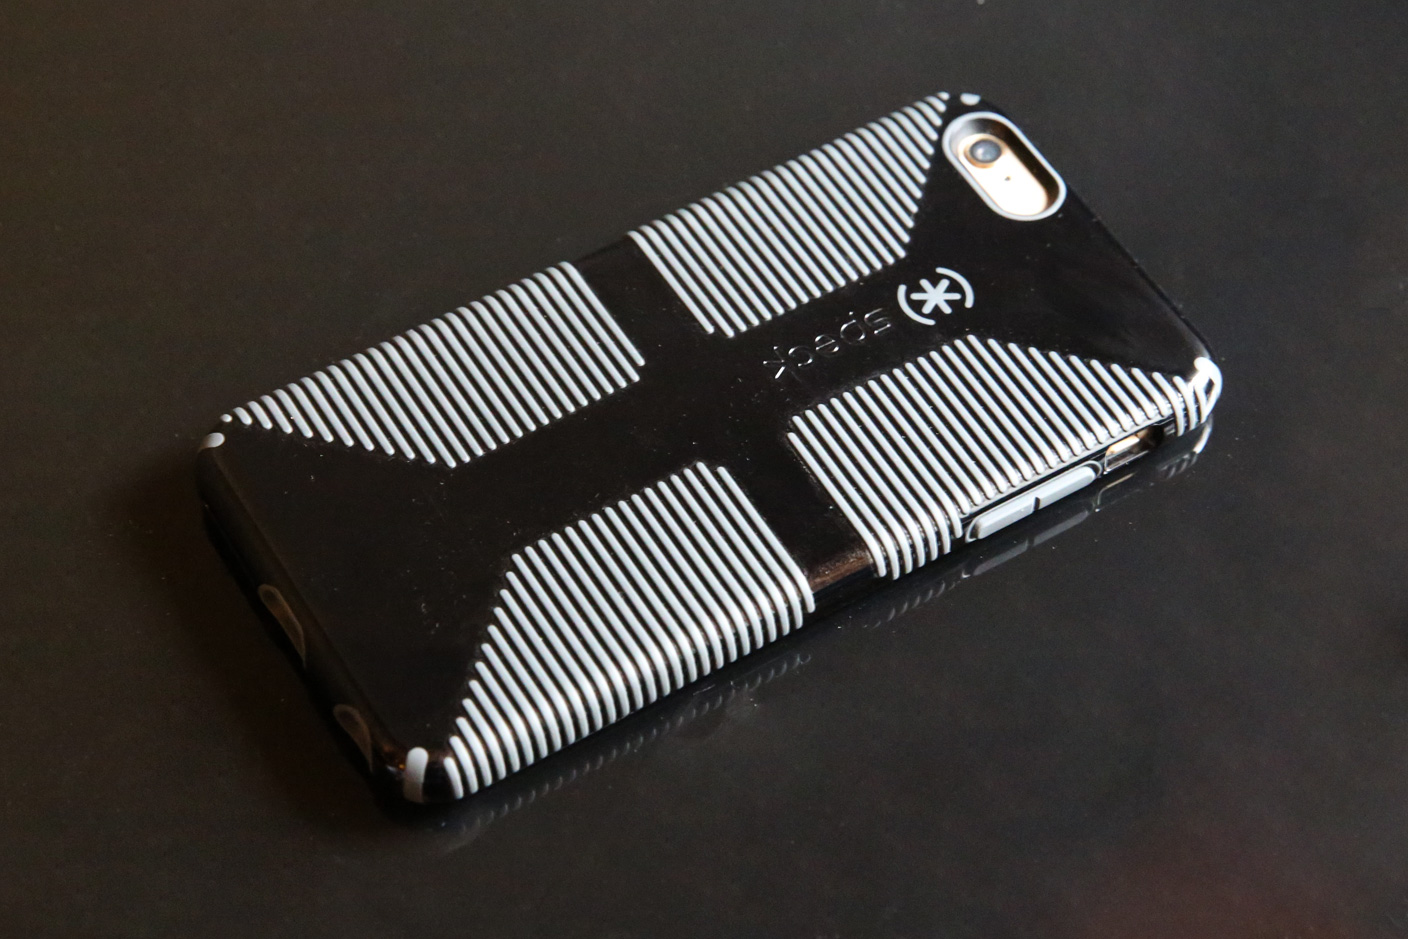 online store 20e57 b5409 Review: Speck's CandyShell Grip + Inked offer ideal iPhone 6 Plus ...